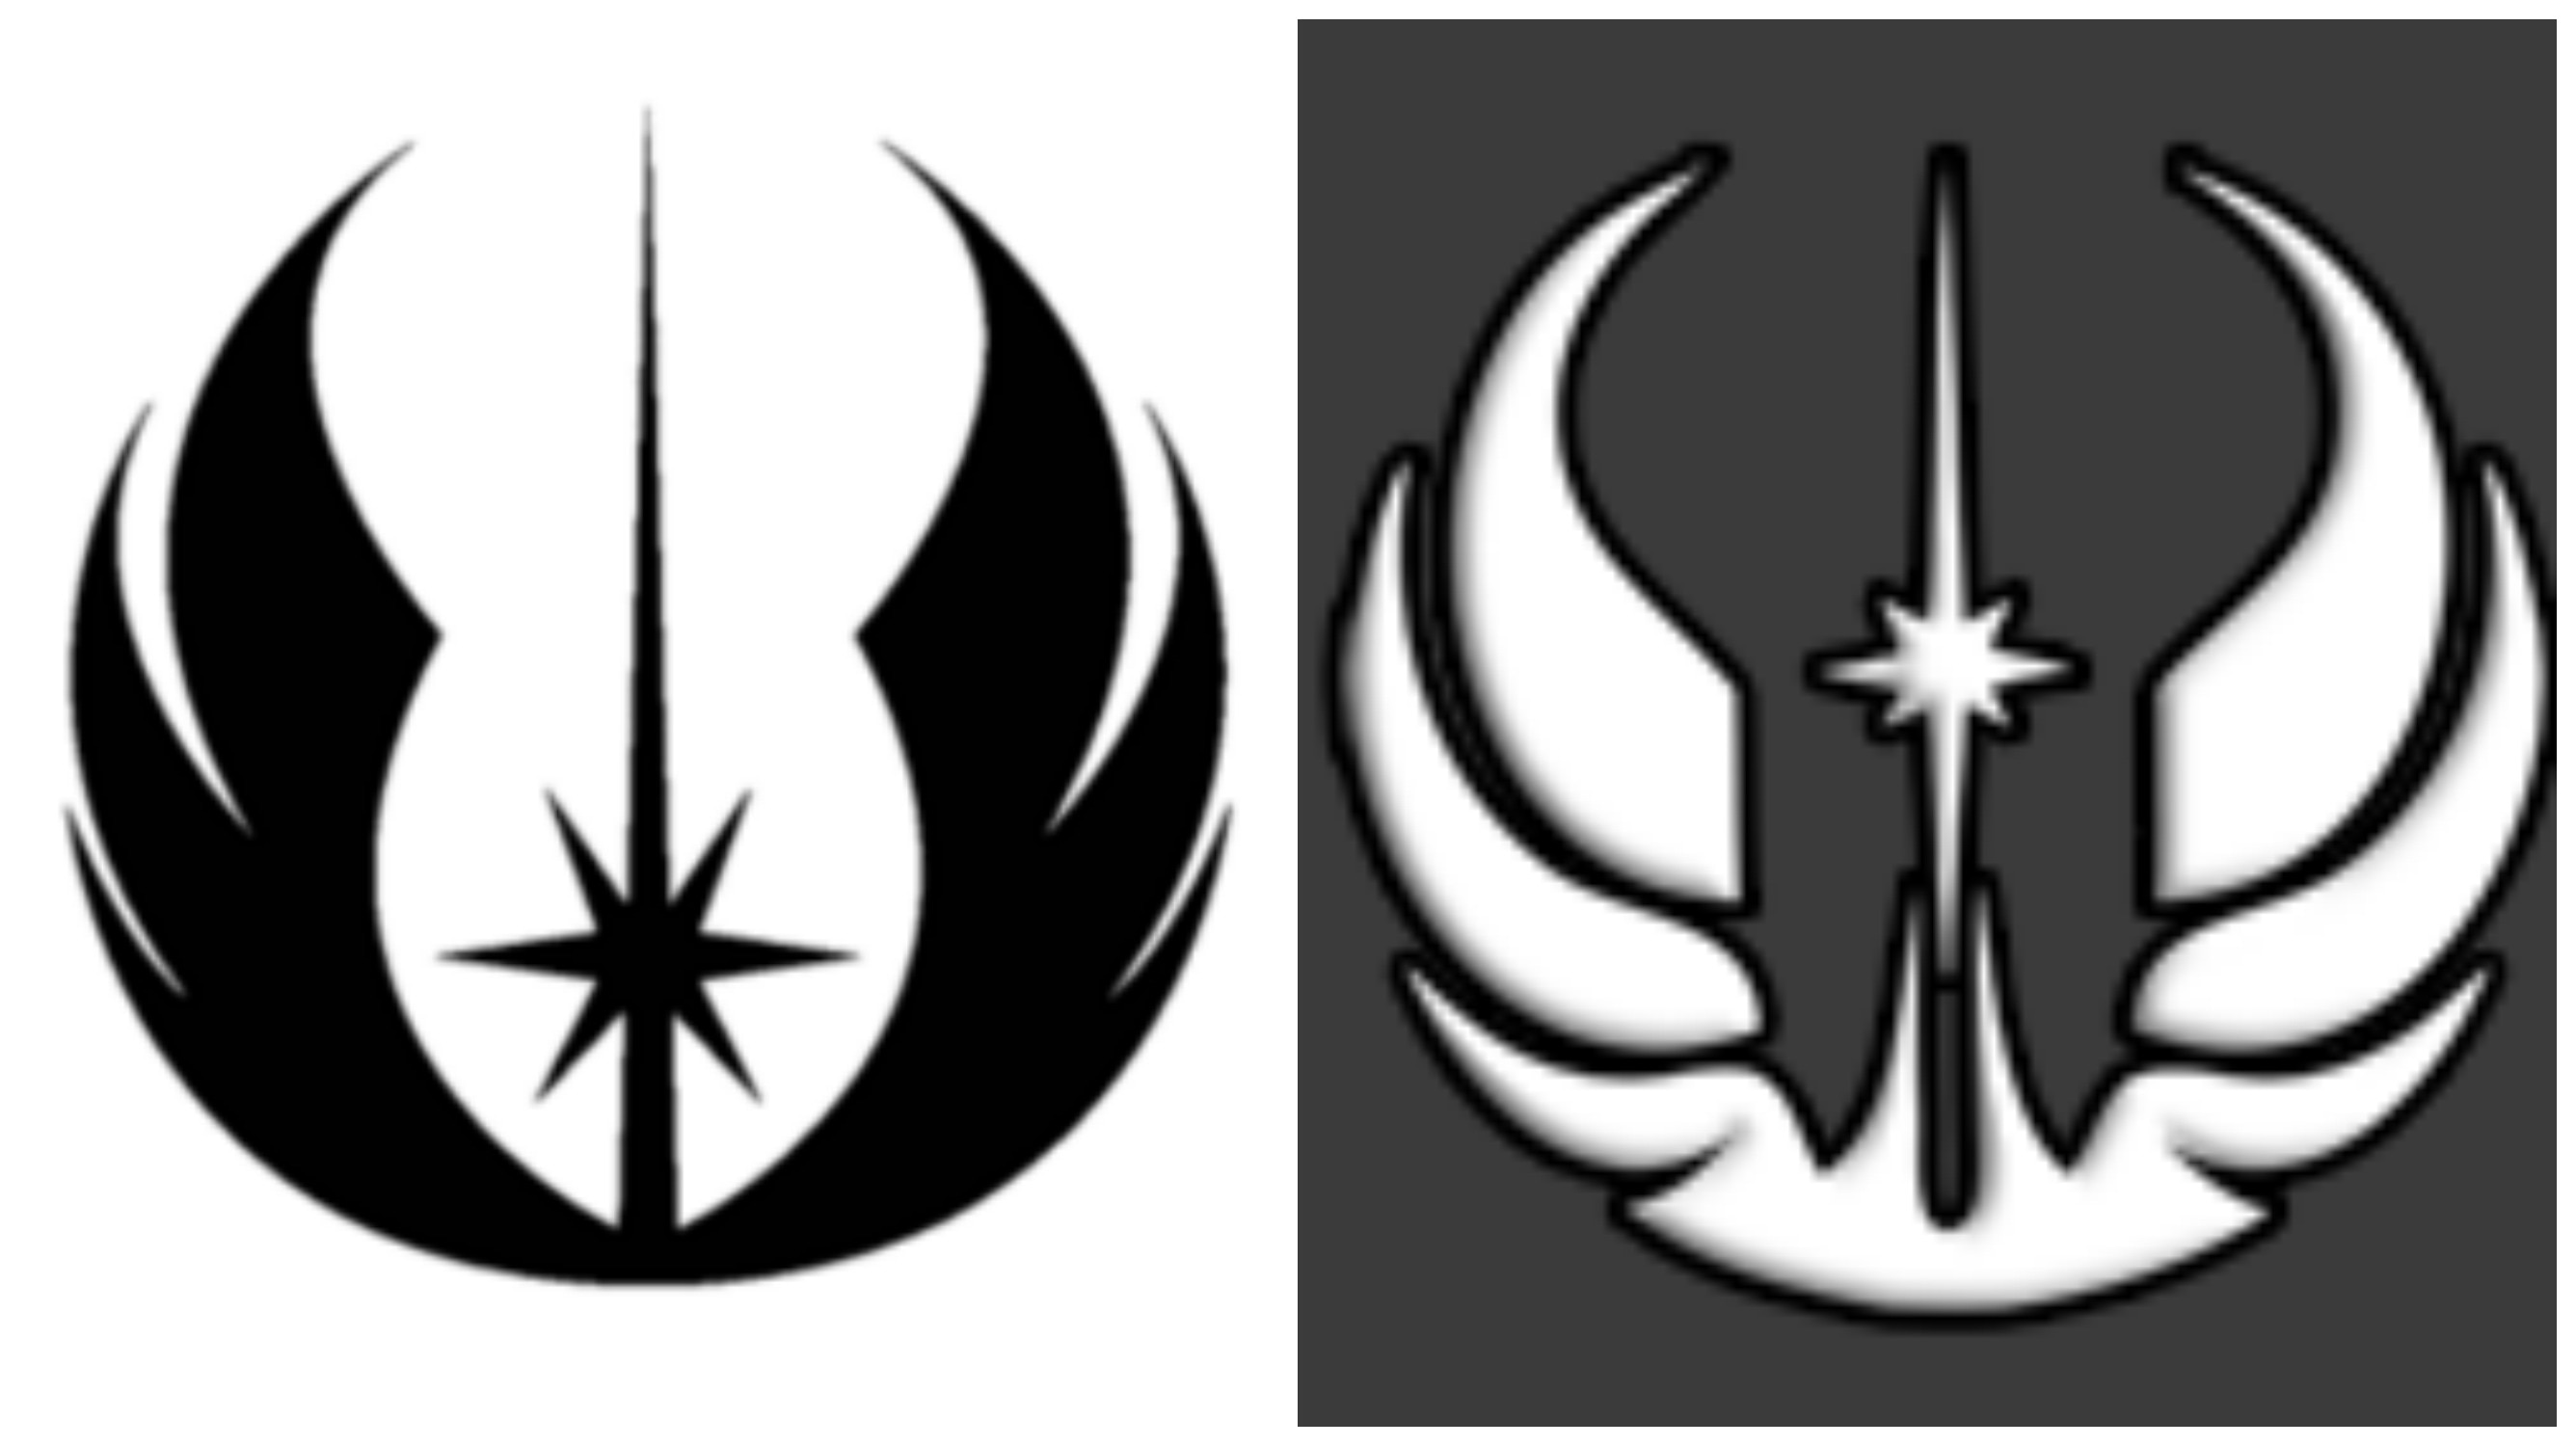 Lucasfilms sues jedi school in foolish attempt to own the use of the lawsuit claims that the academys symbol right is similar to their trademarked jedi order logo left biocorpaavc